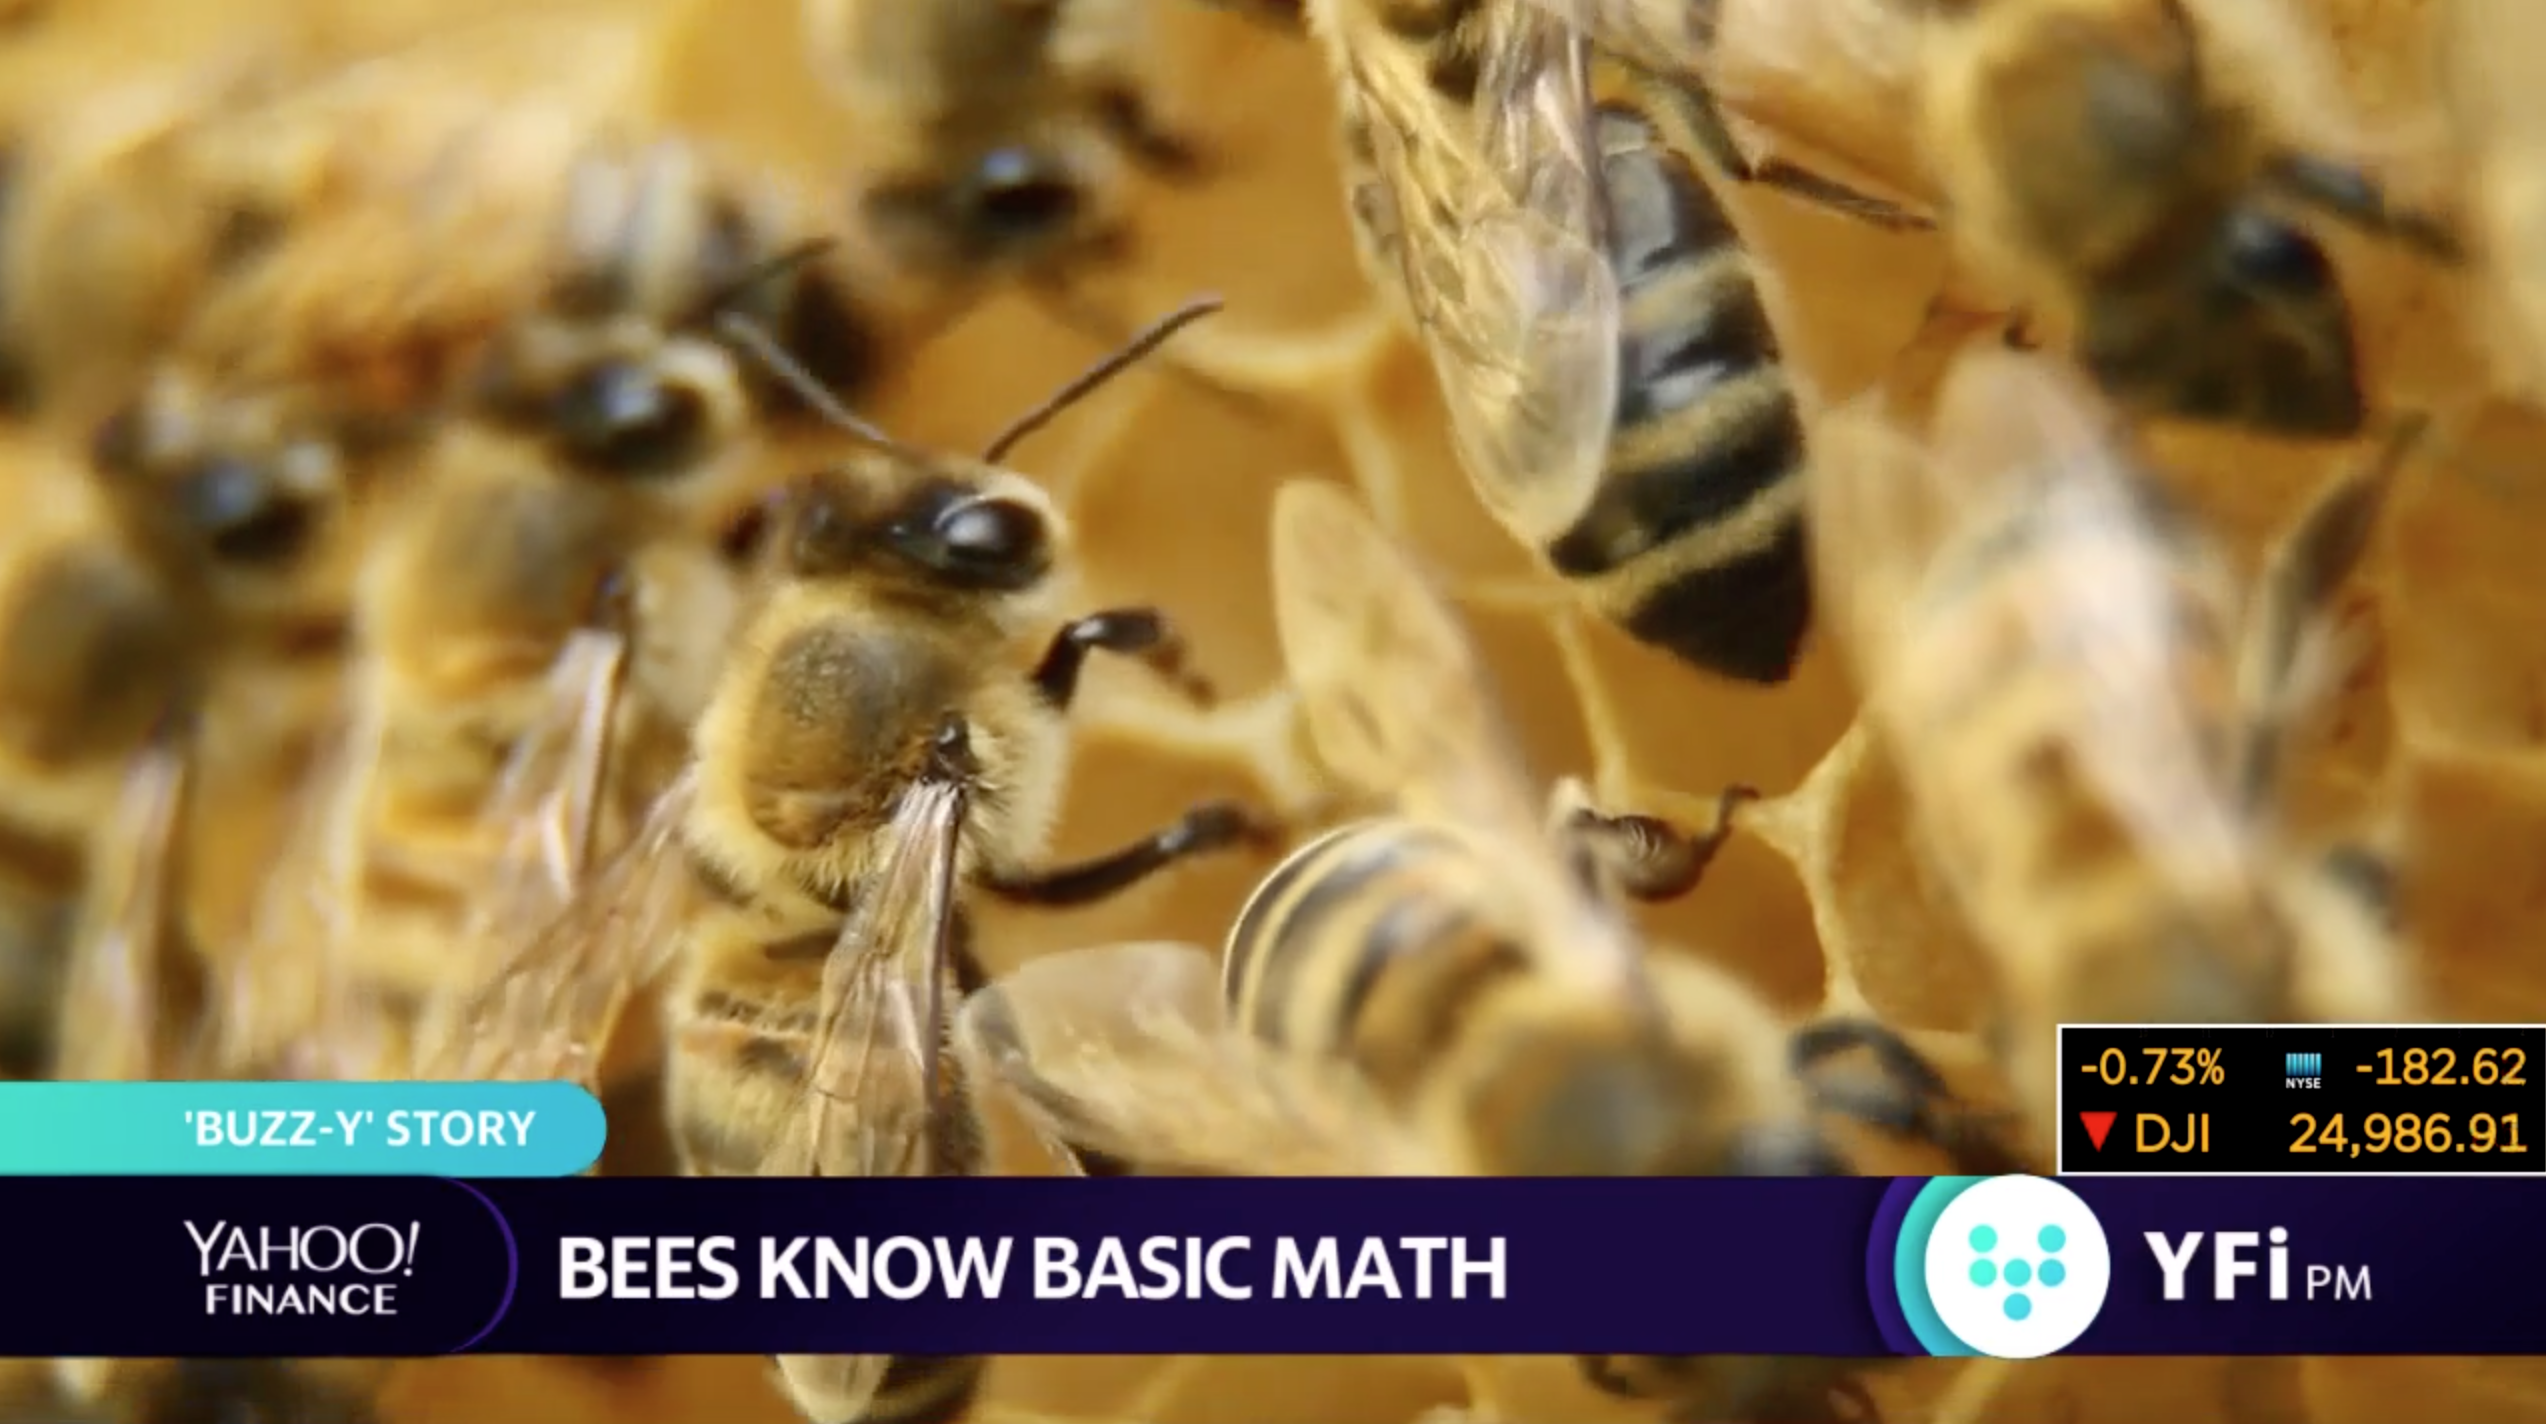 Latest buzz: bees know math